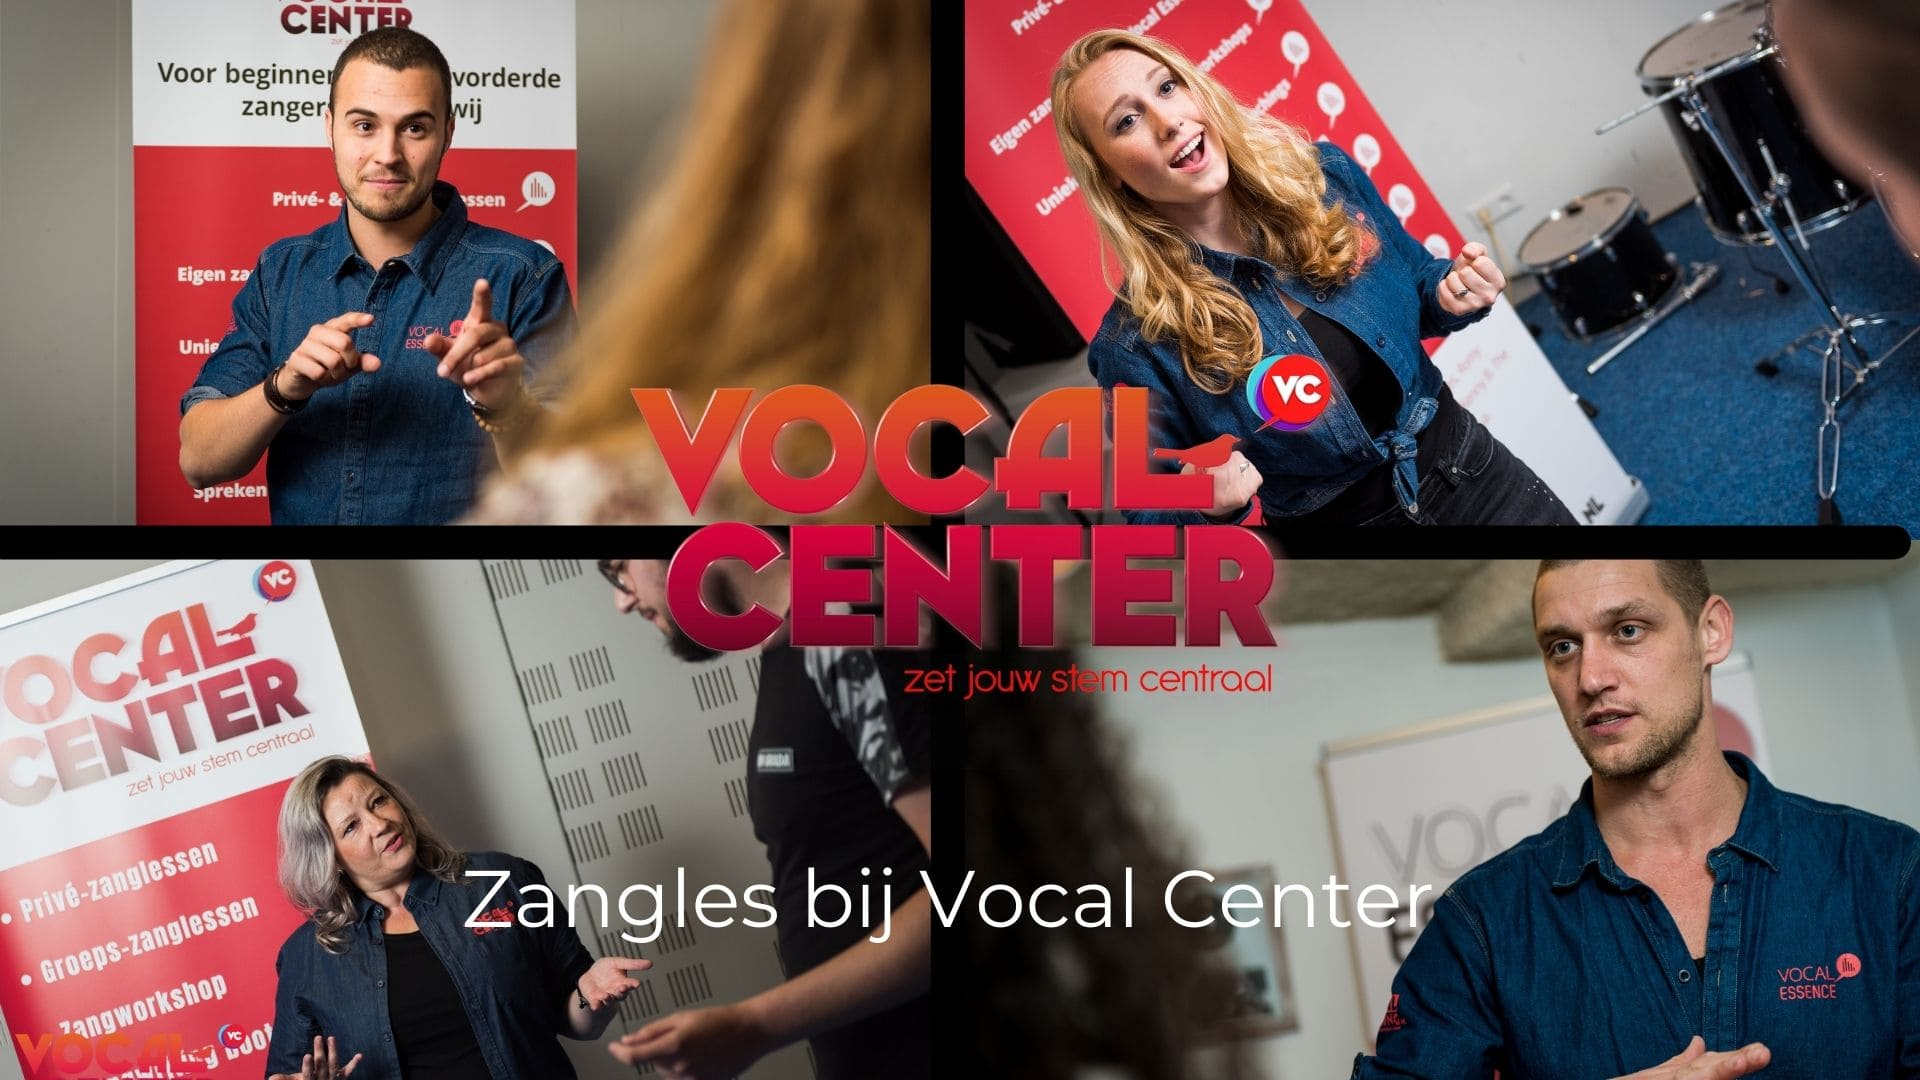 Zangles bij Vocal Center